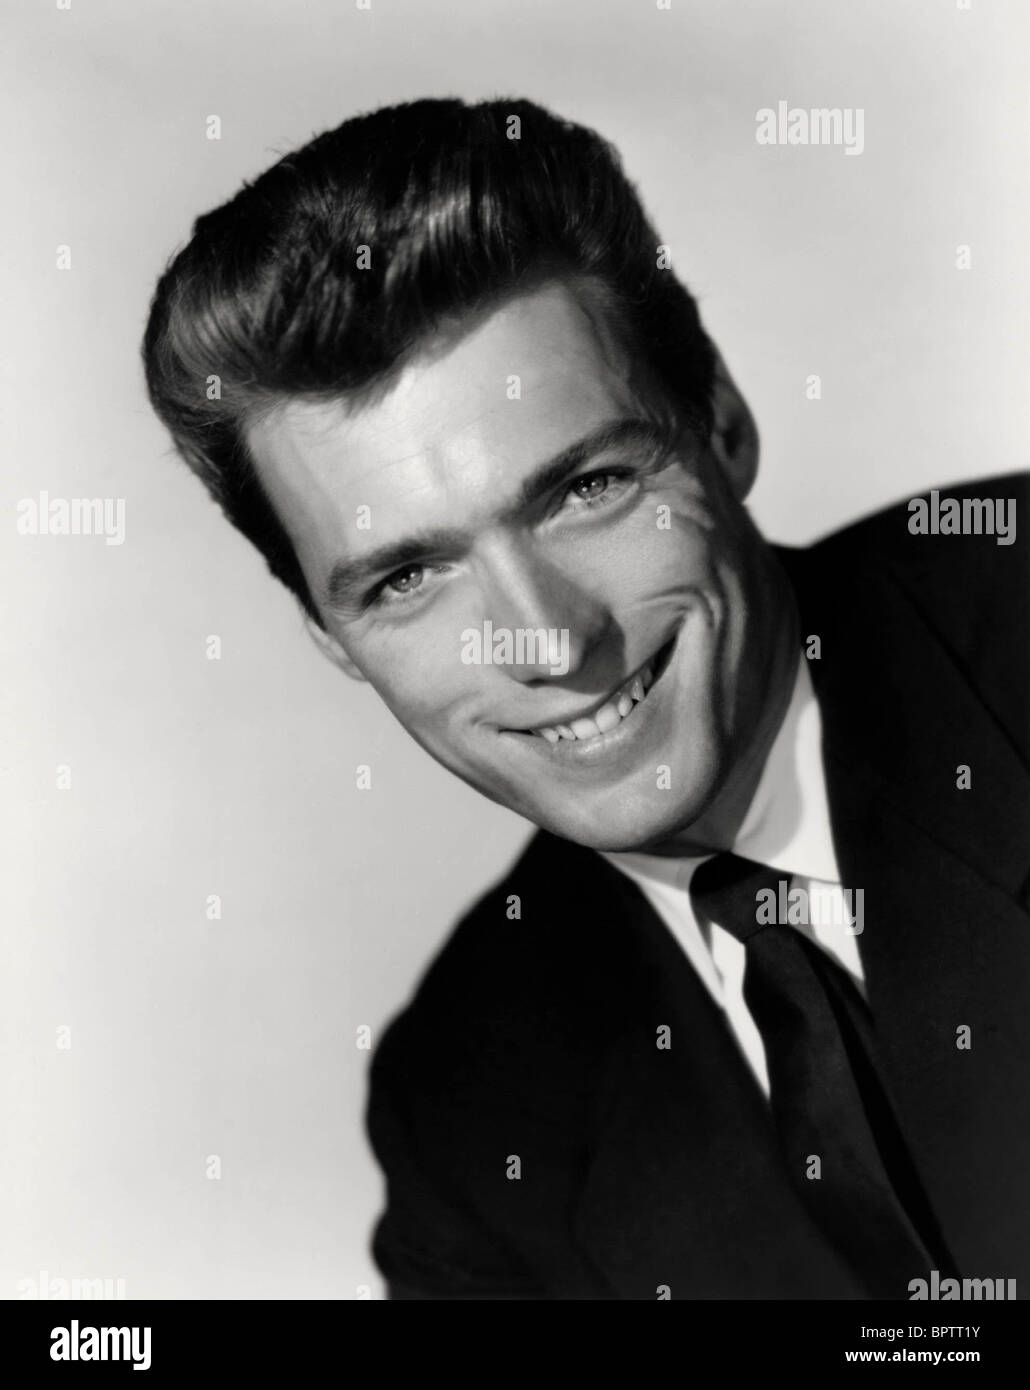 CLINT EASTWOOD ACTOR (1960) - Stock Image